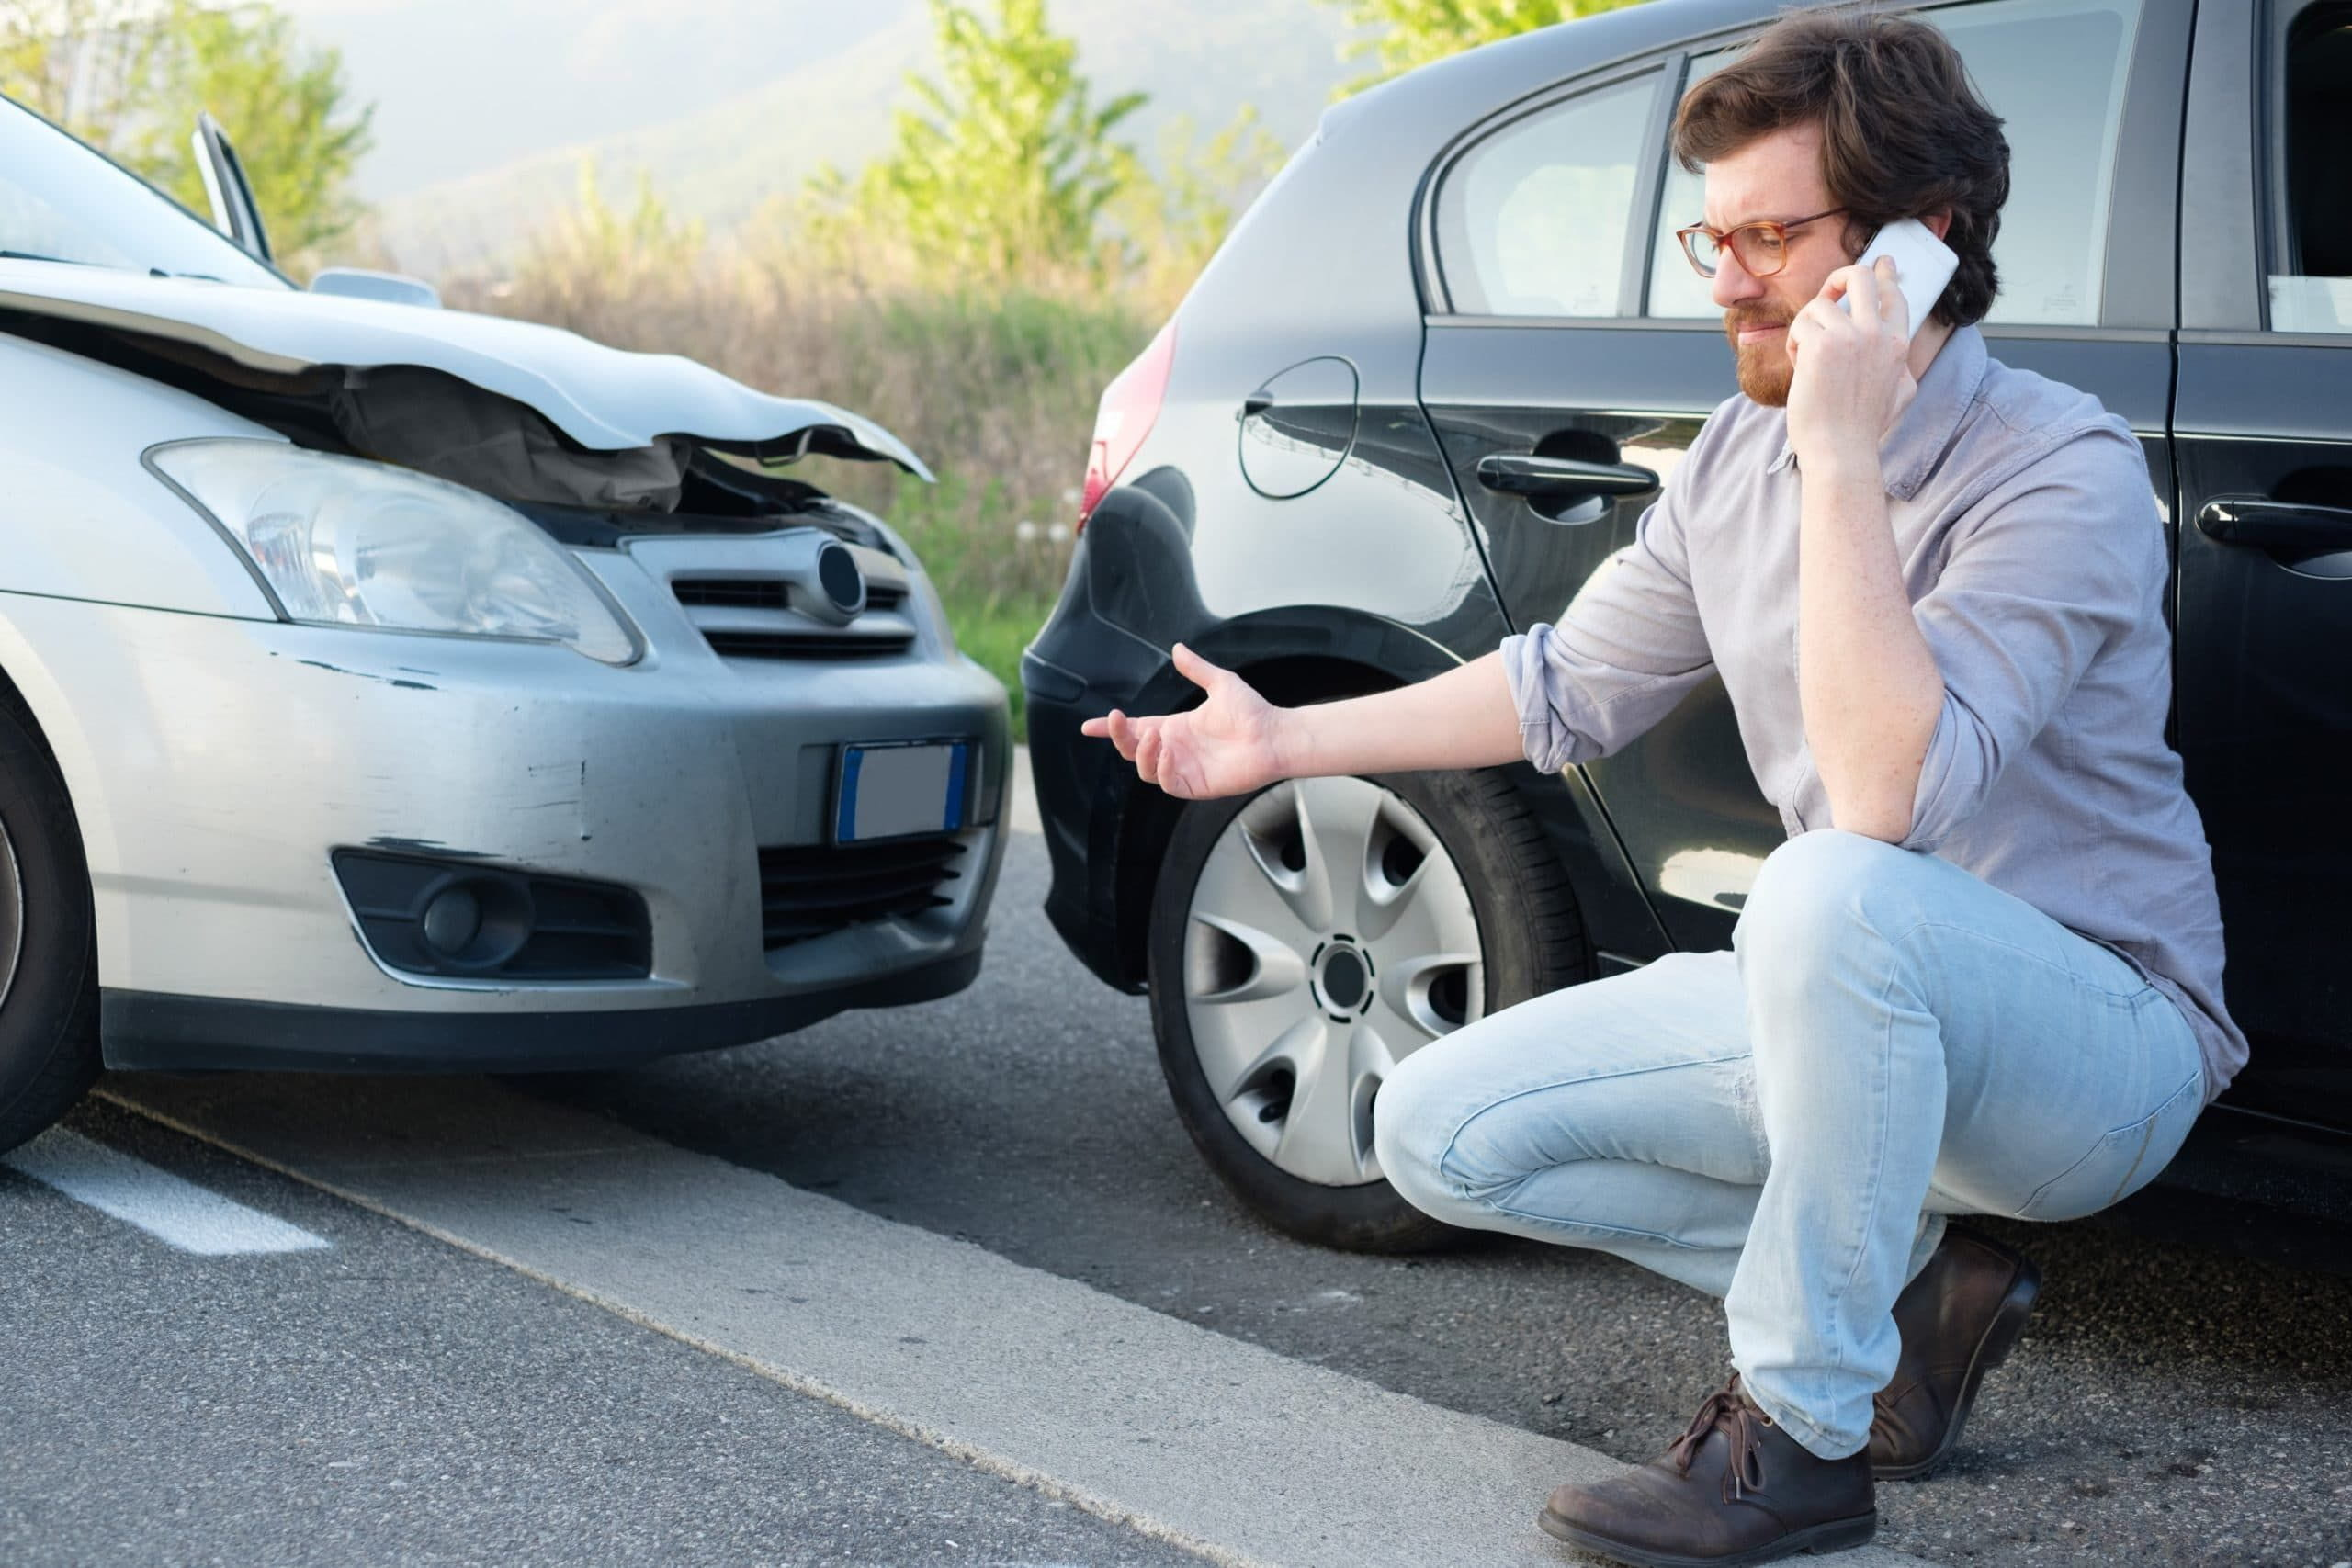 Do I Need To Call Police After a Minor Accident? | The Sawaya Law Firm